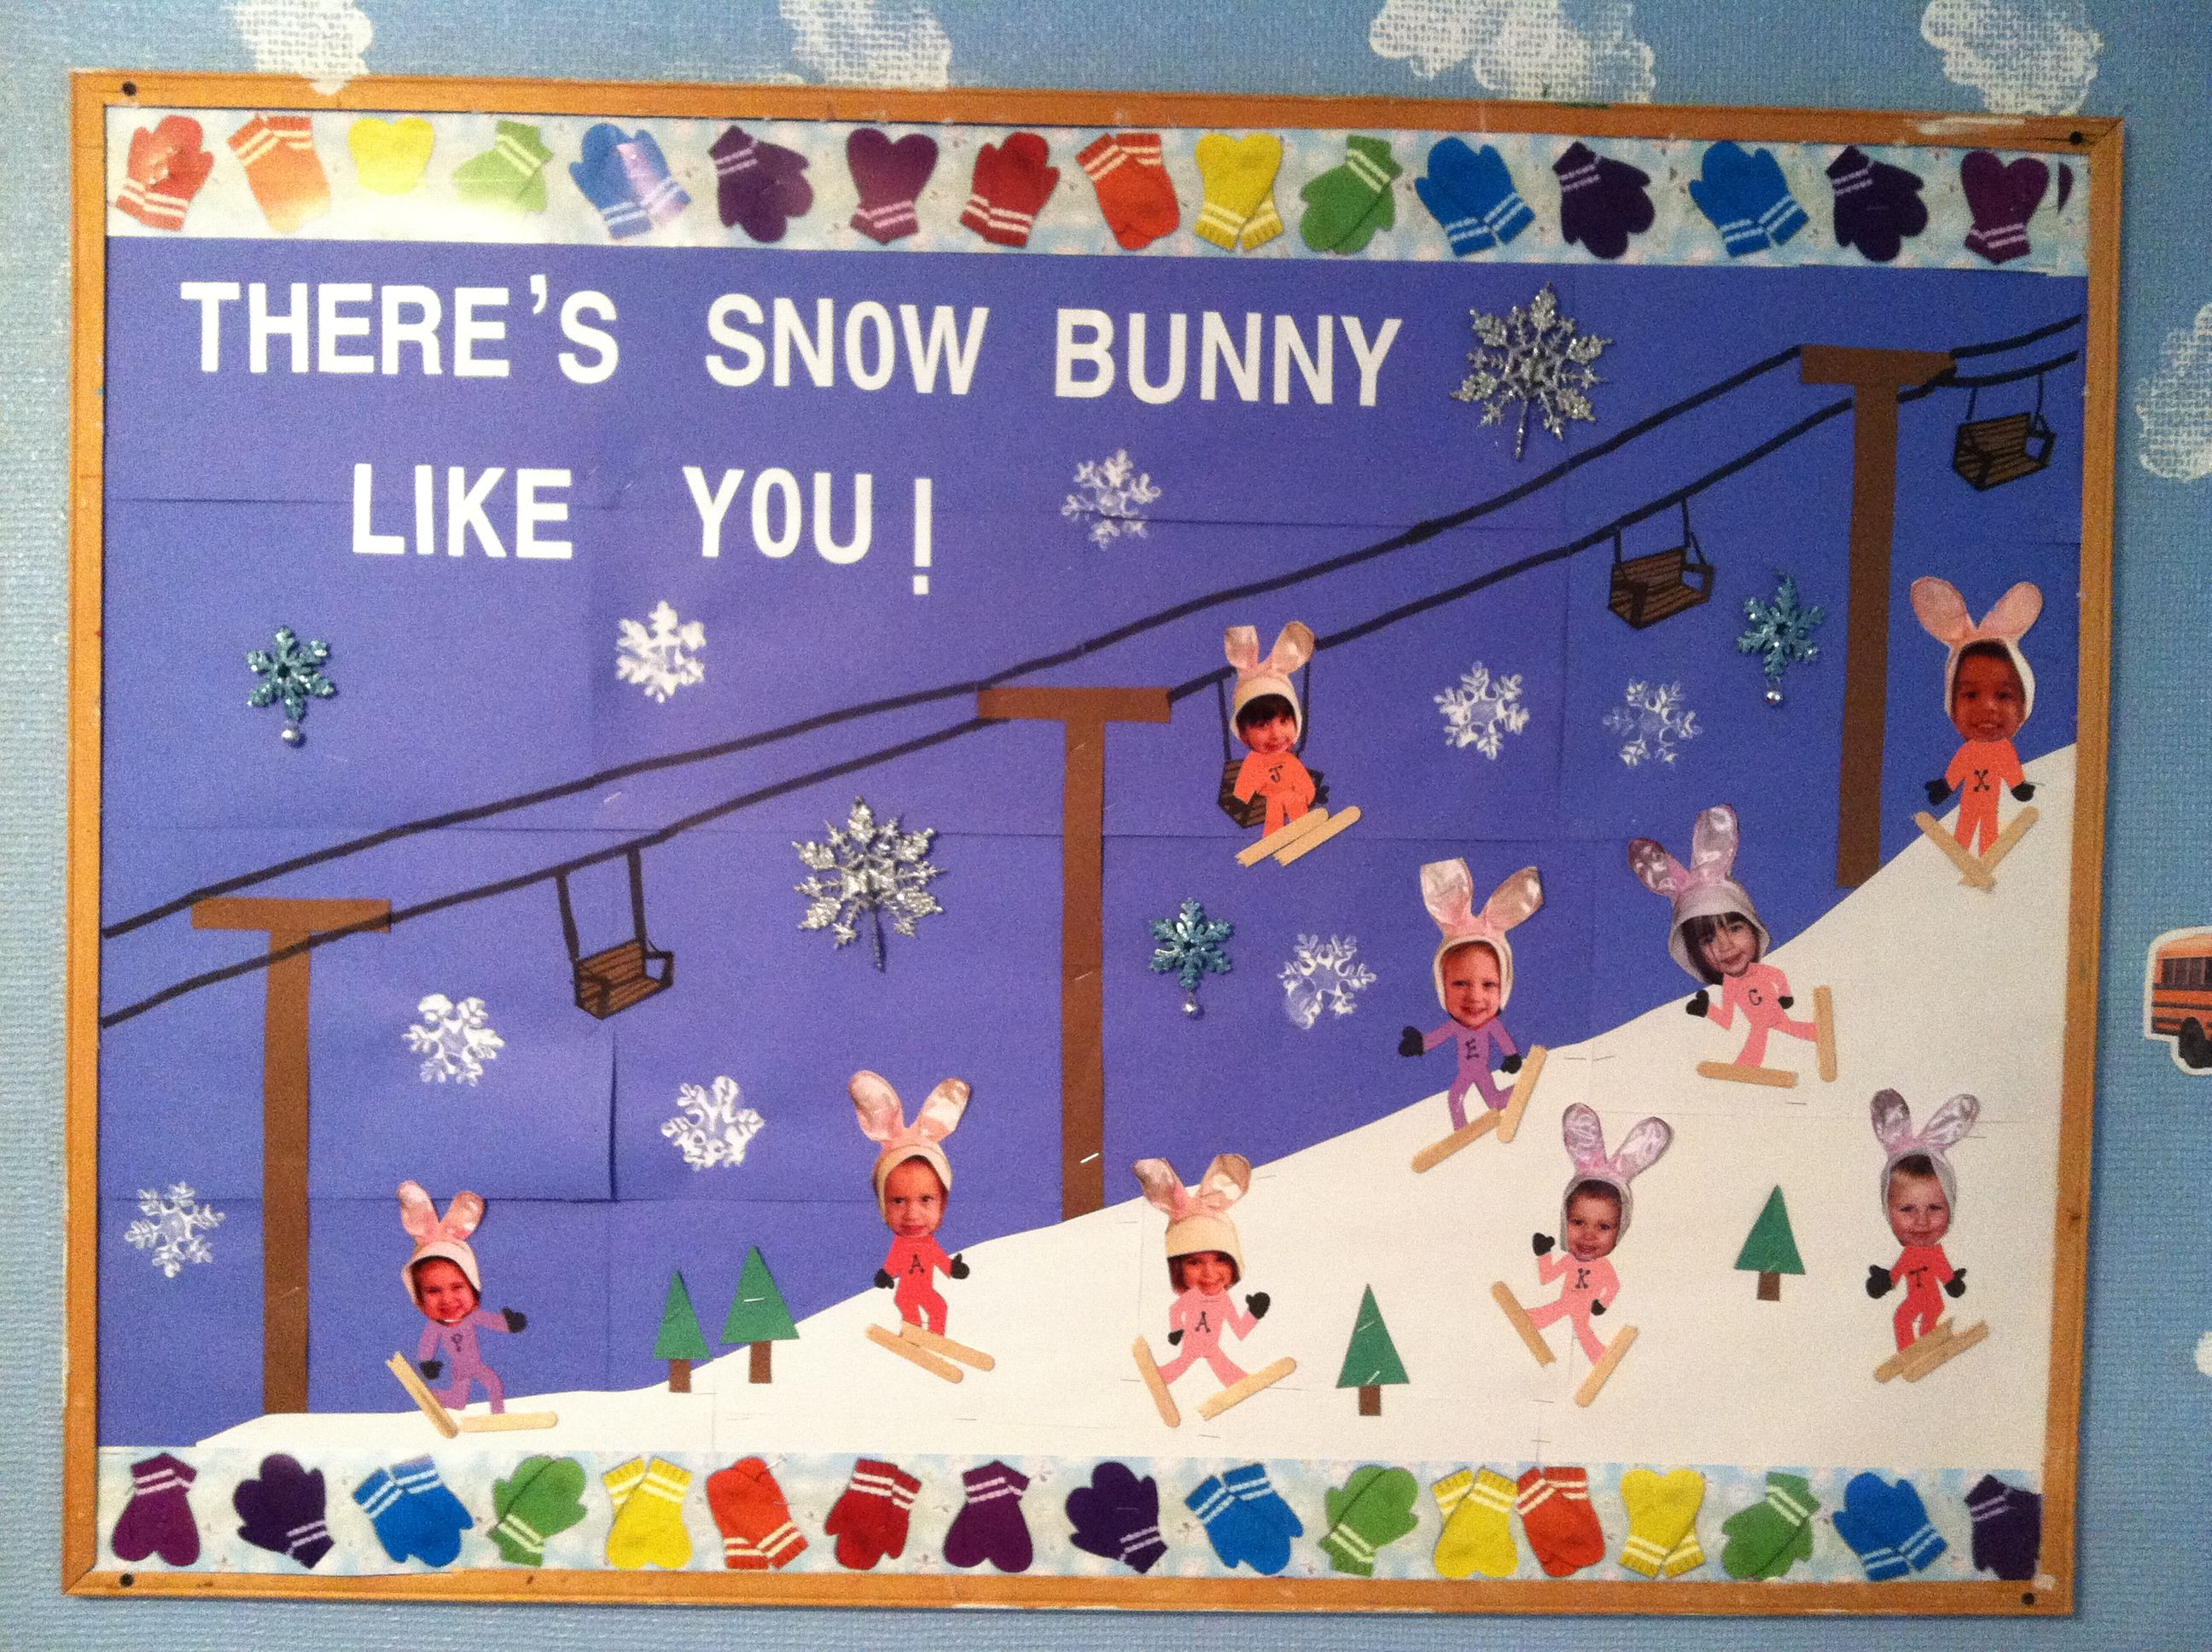 White Christmas Classroom Decorations : Winter classroom bulletin board quot there is snow bunny like